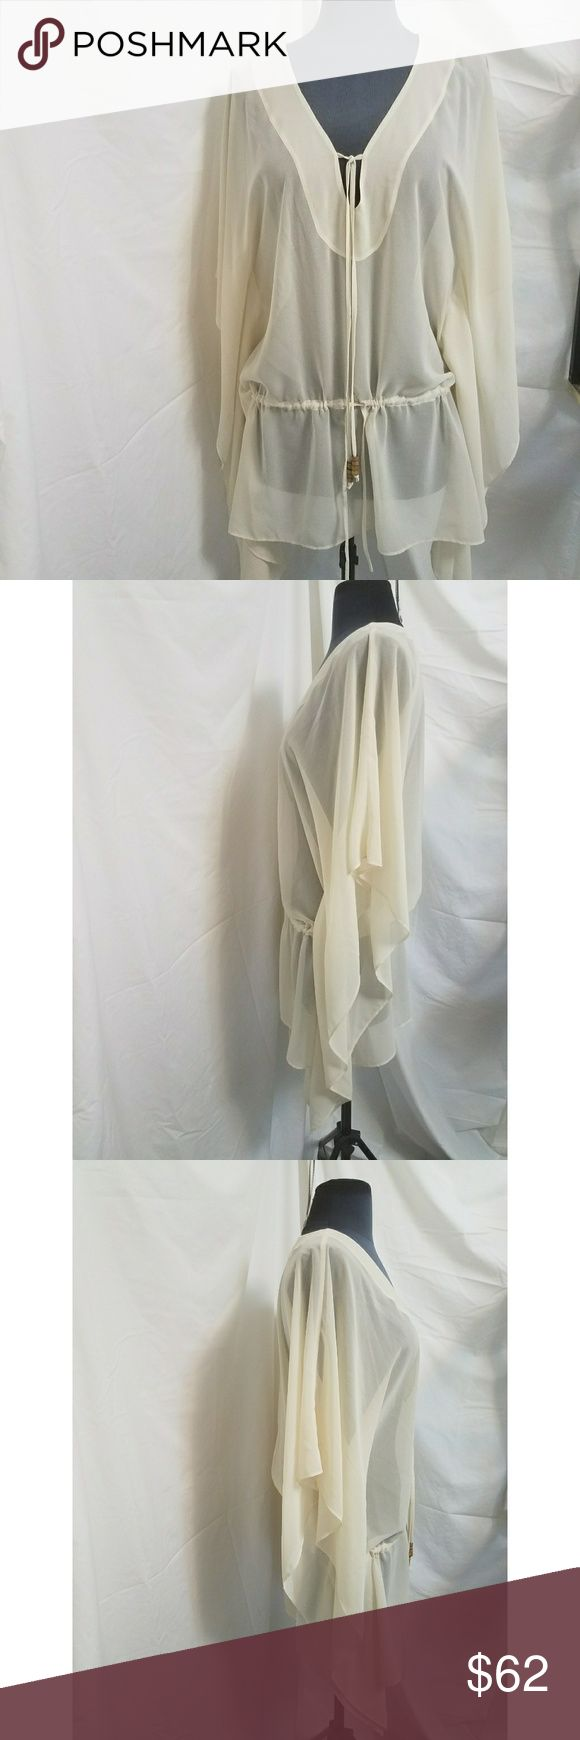 Rachel Roy Cream  Batwing Sheer Top Size XS This Rachel Rachel Roy top is in great condition.  See the last photo for a size chart.  It is made of 100% Polyester.  My home is smoke-free and pet-free.  Check out the other items in my closet to bundle two or more items for a great bundle discount.  I consider all offers.  Happy Poshing! RACHEL Rachel Roy Tops